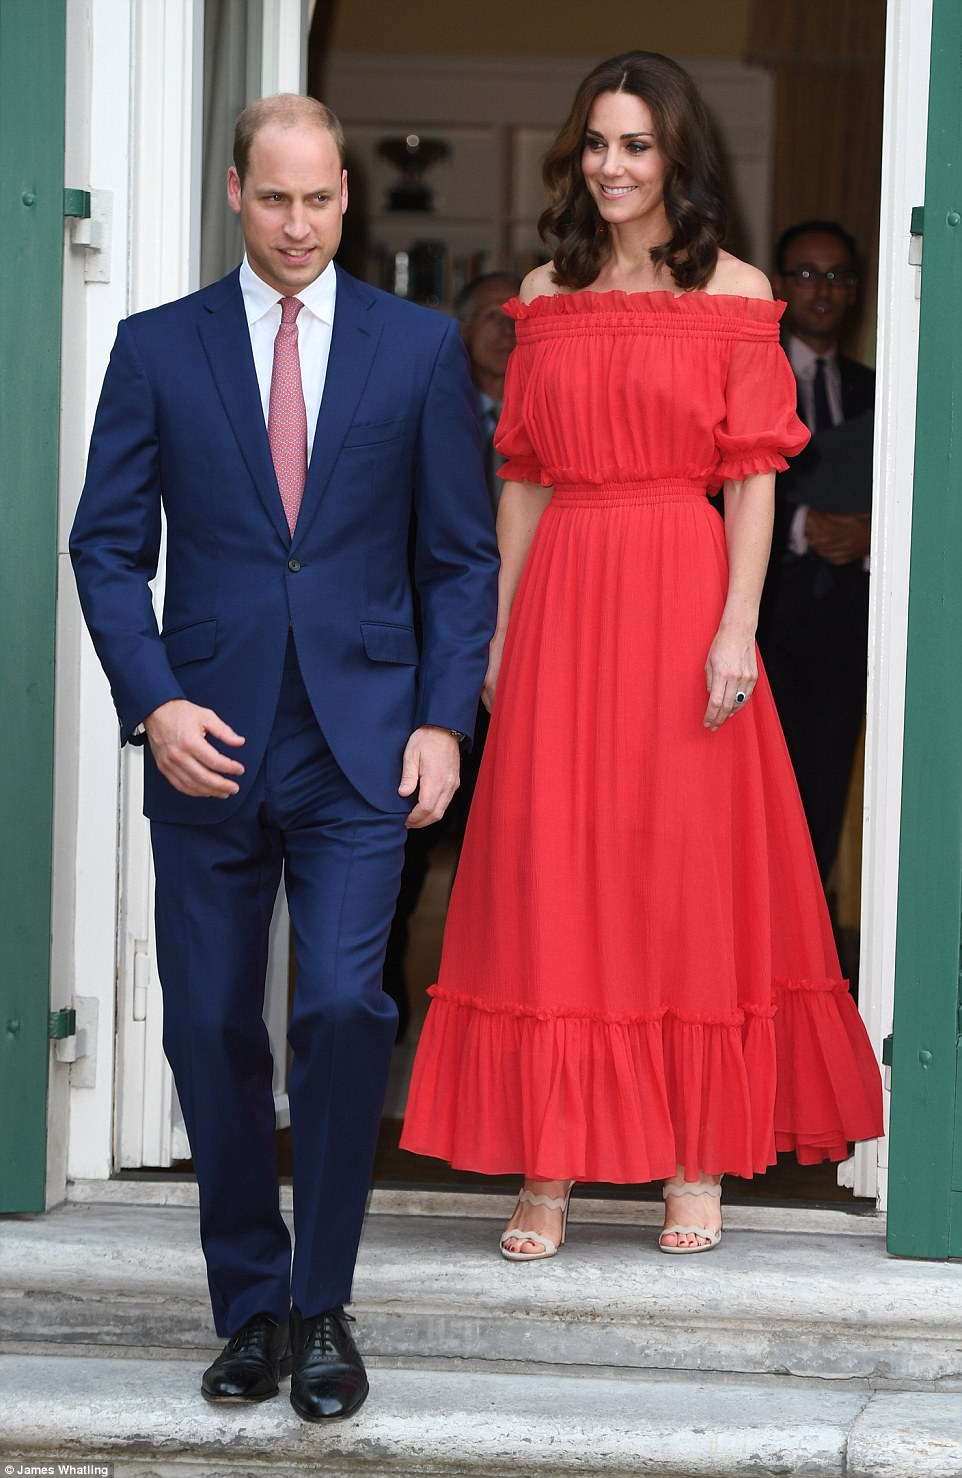 Kate opted for a gypsy-style off-the-shoulder red gown at the garden party tonight - a far cry from the plunging neckline she was sporting earlier in the week